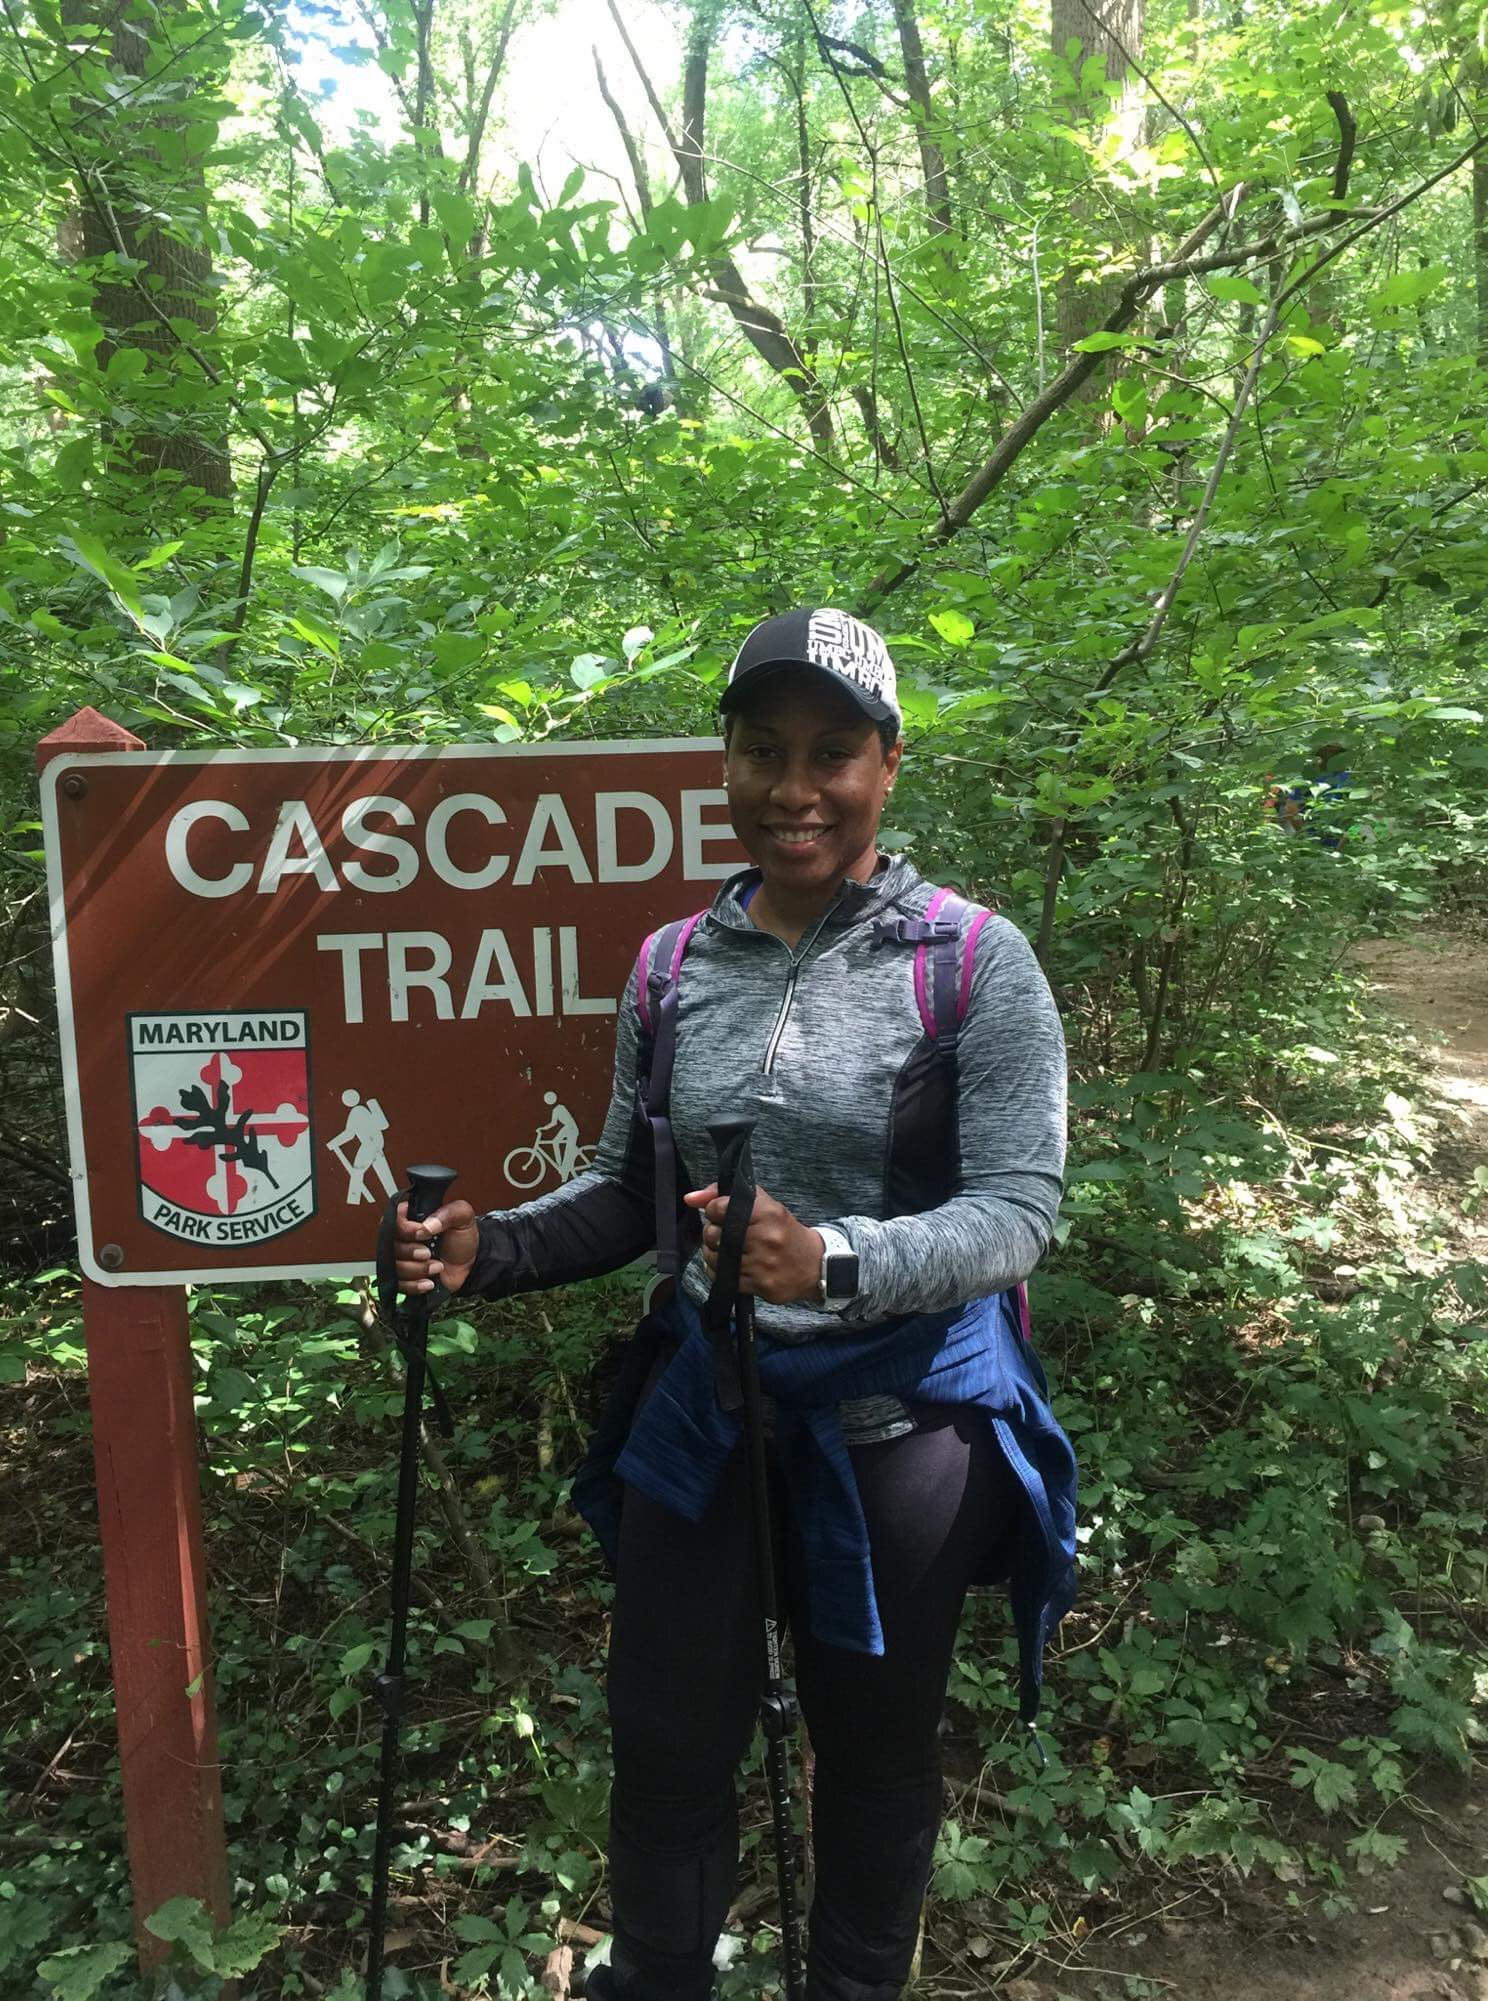 Sharon Taylor Is Part Of A Hiking Group Called Outdoor Afro Photo Provided By